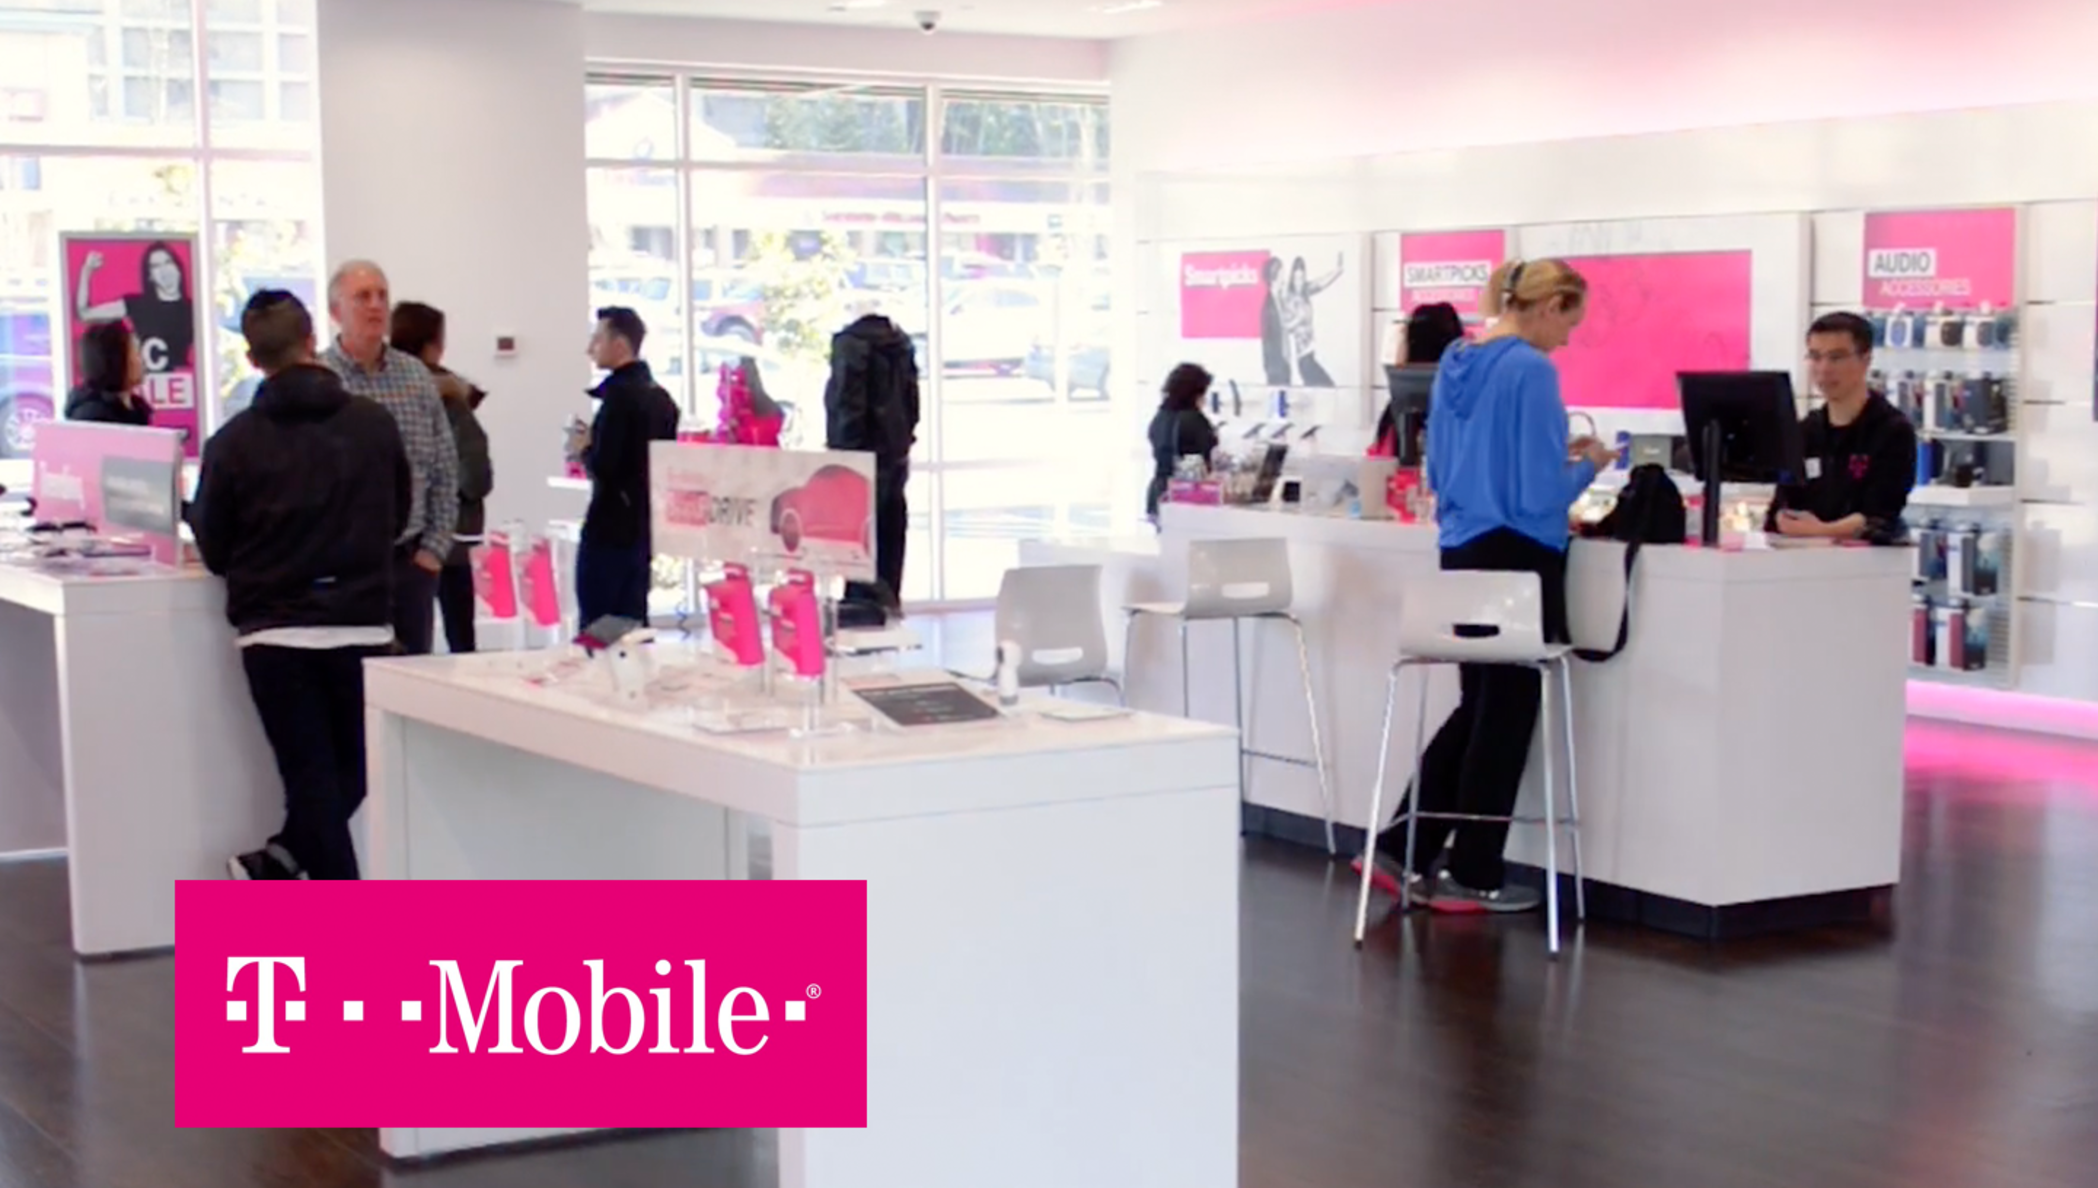 The interior of a T-mobile store with employees helping customers.